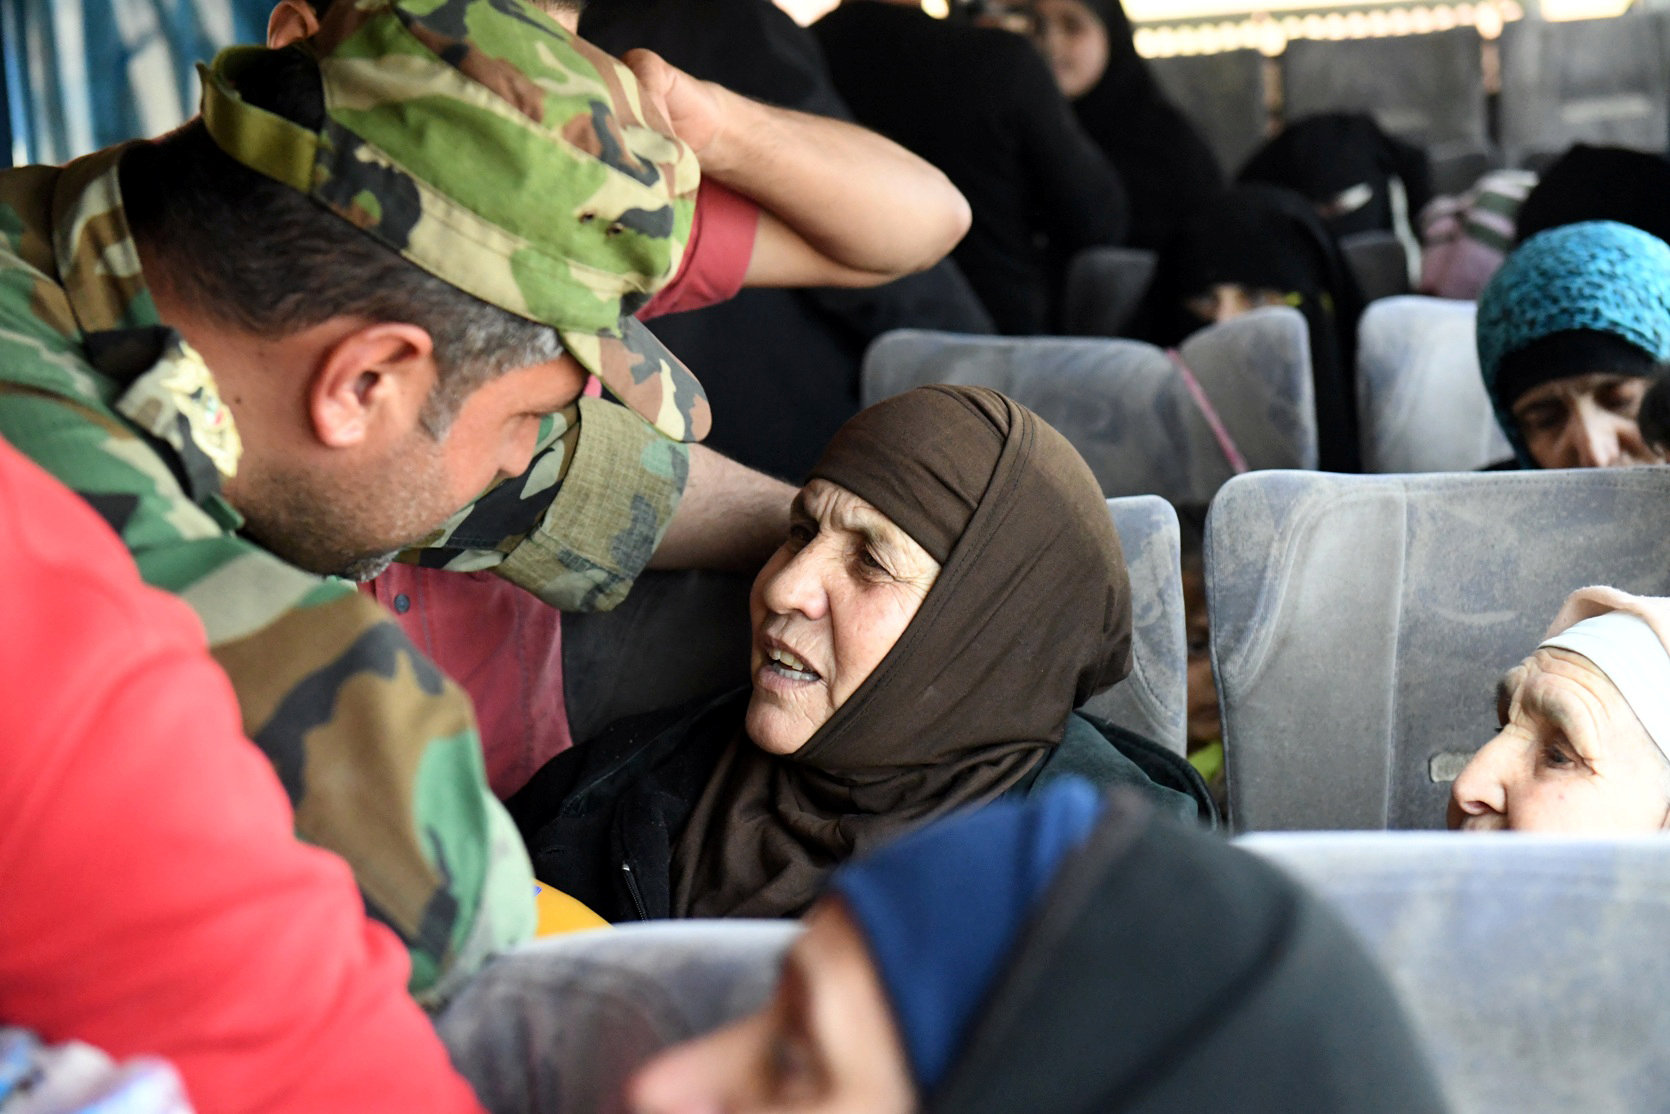 A soldier loyal to Syria's President Bashar al Assad forces talks to a woman in a bus after they were released by militants from Idlib, Syria May 1, 2018. SANA/Handout via REUTERS